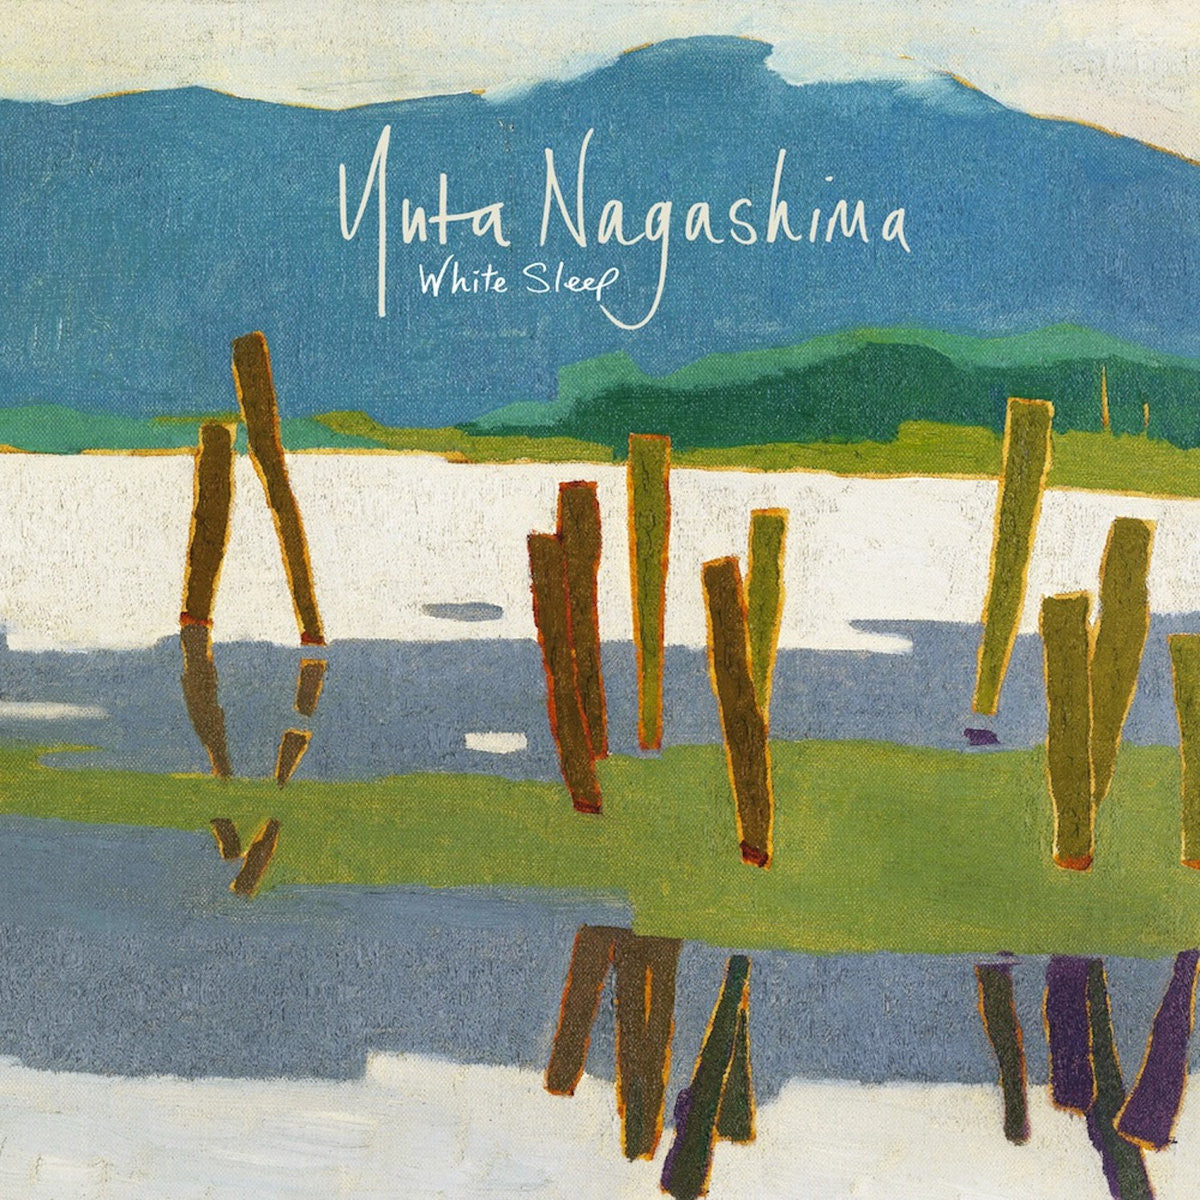 Yuta Nagashima - White Sleep